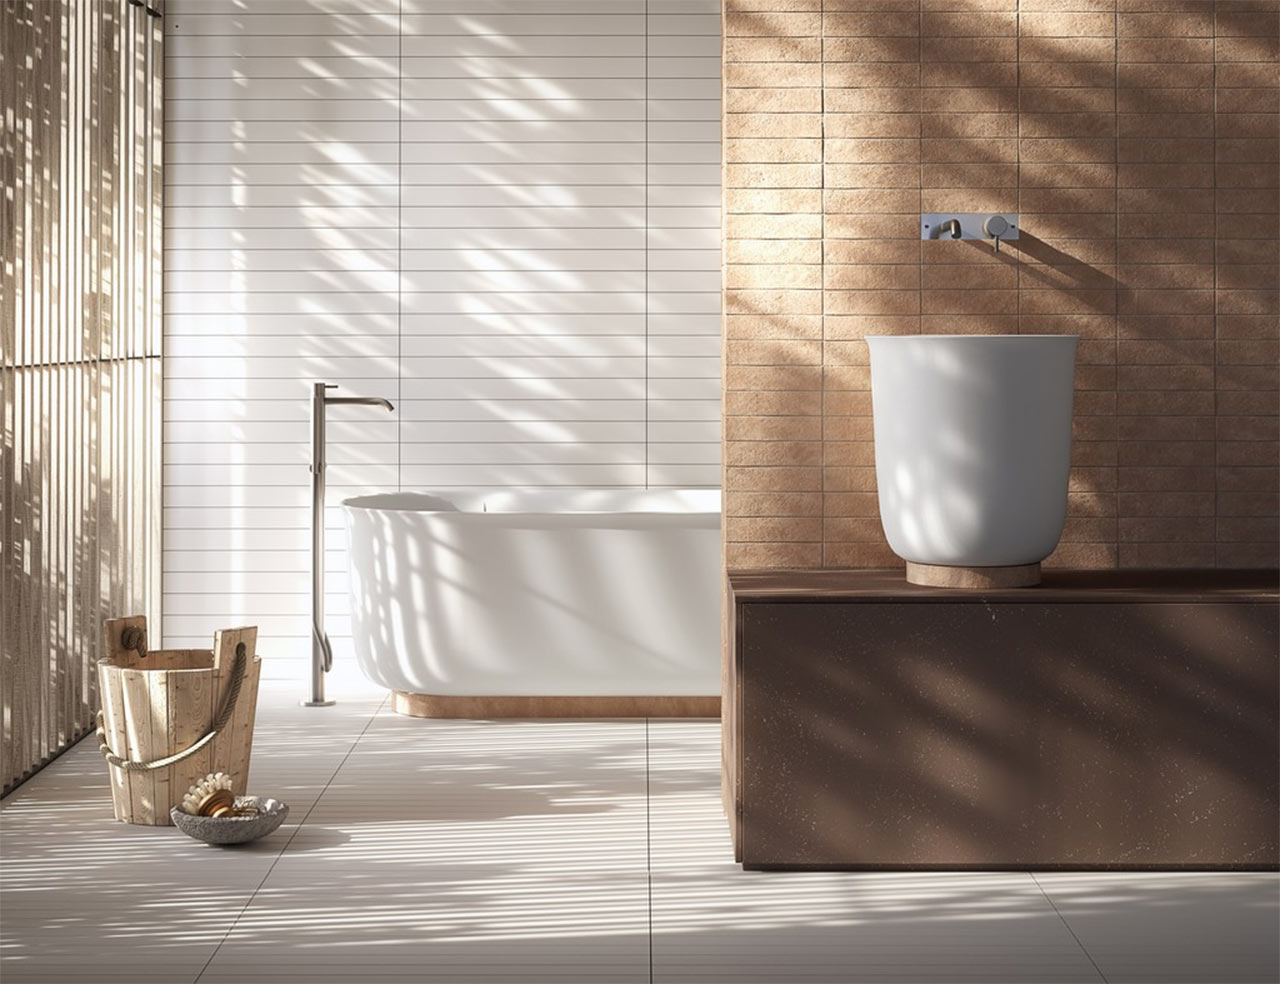 New designs for bathrooms - Bathroom Designs New Trends For 2016